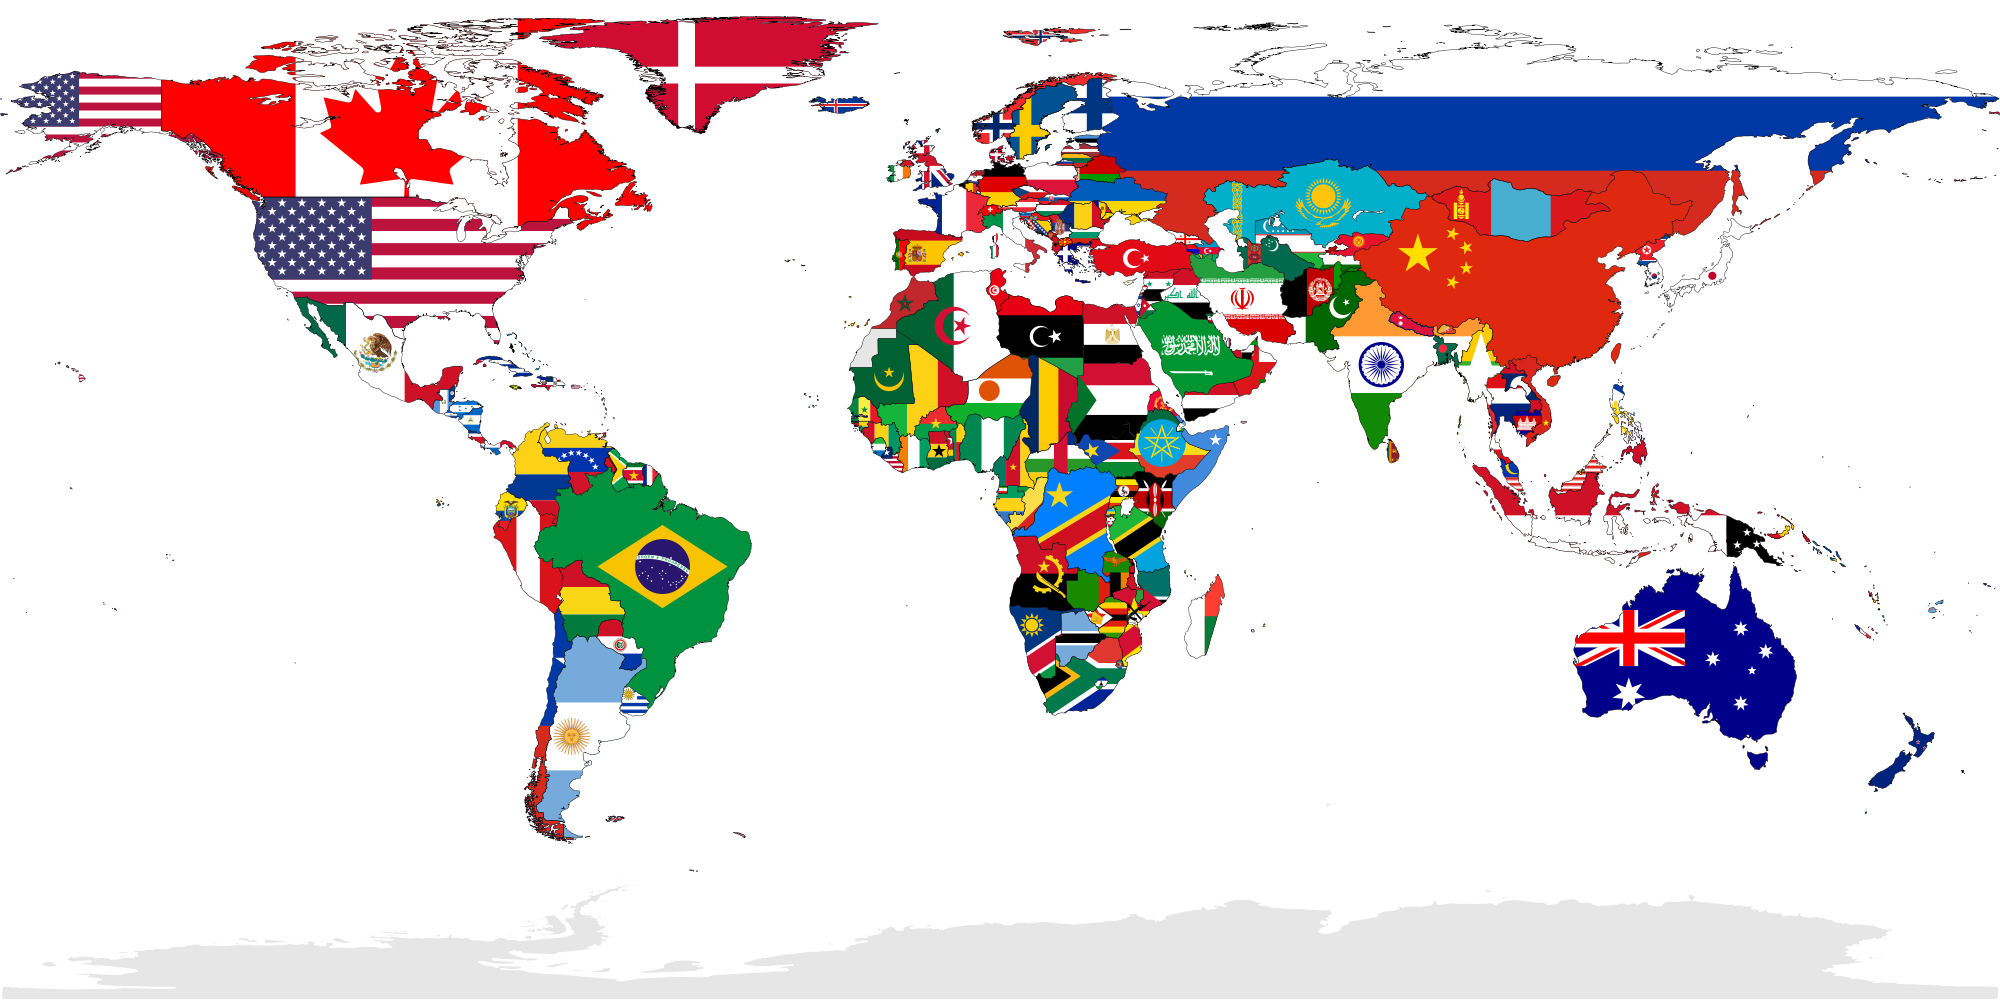 World Map With Flags File:Flag map of the world.png   Wikimedia Commons World Map With Flags